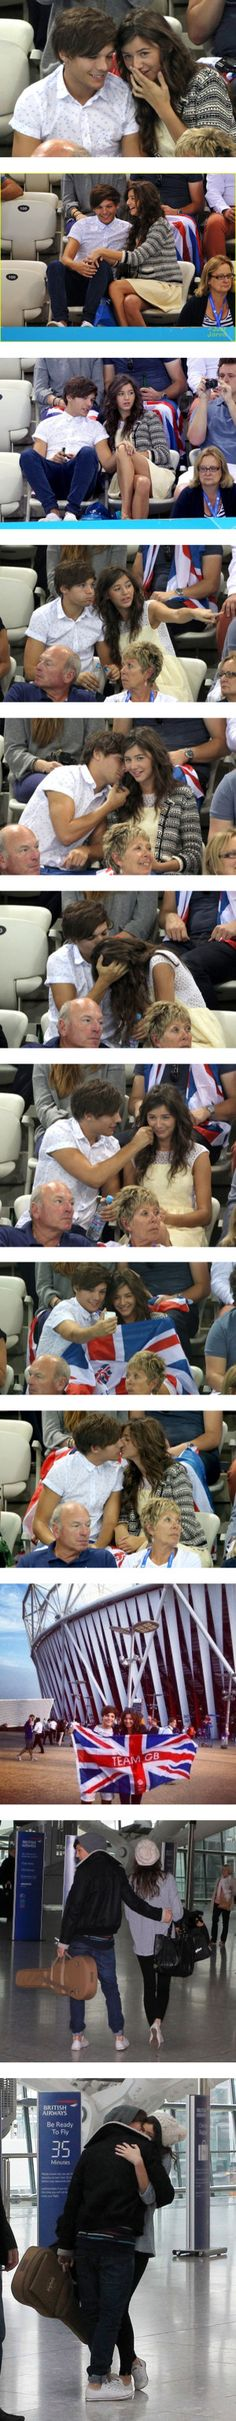 Louis + Eleanor = LOVE <3